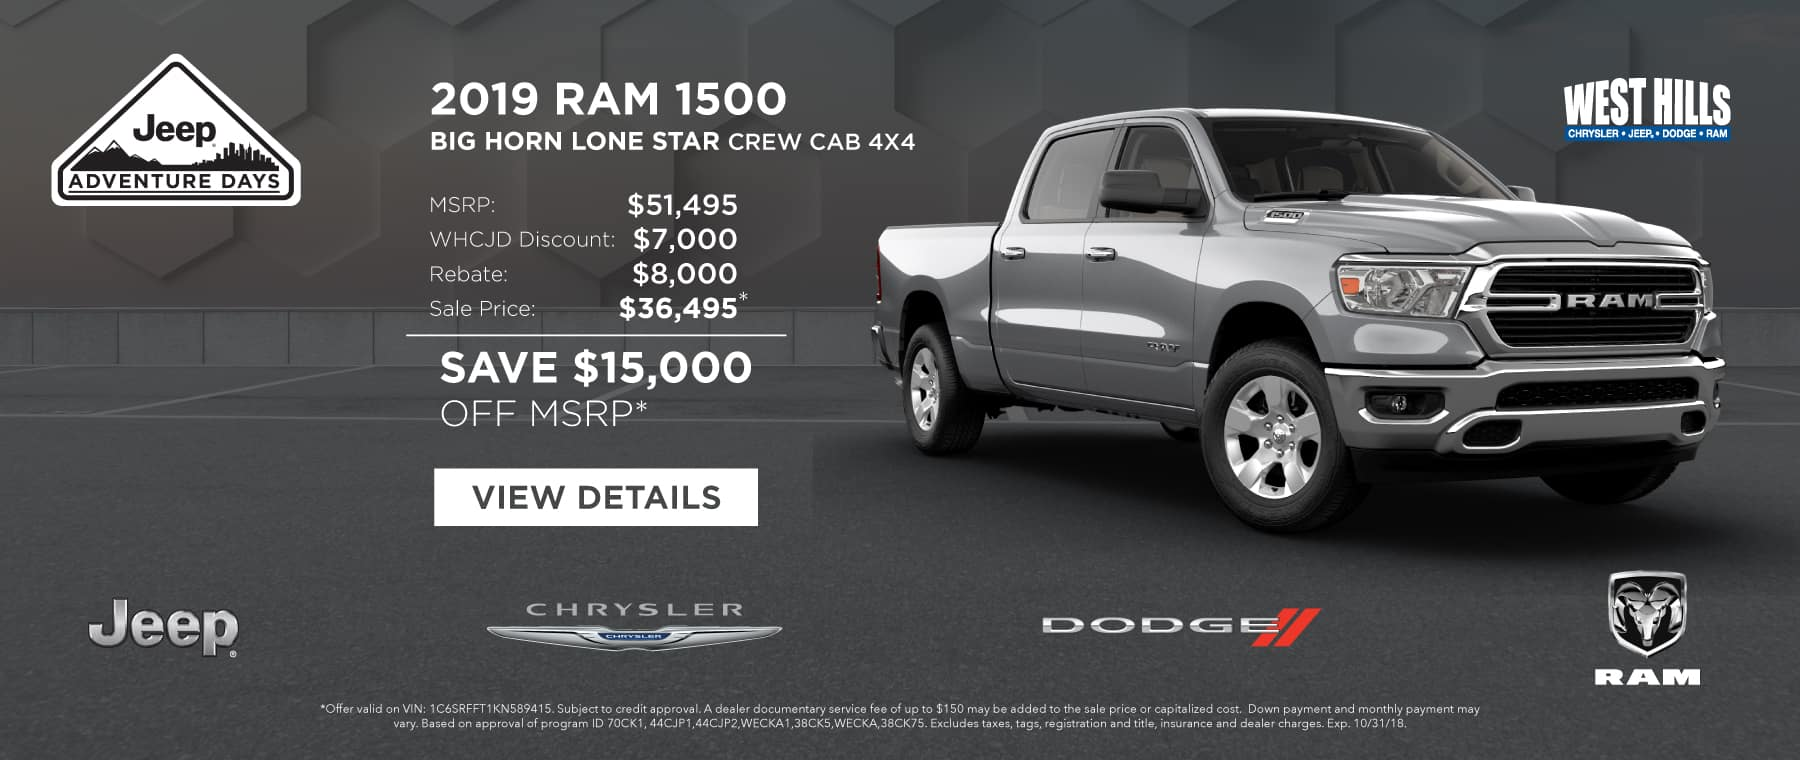 Amazing 2019 Ram 1500 Big Horn Lone Star Crew Cab 4X4 (FEATURED VEHICLE)